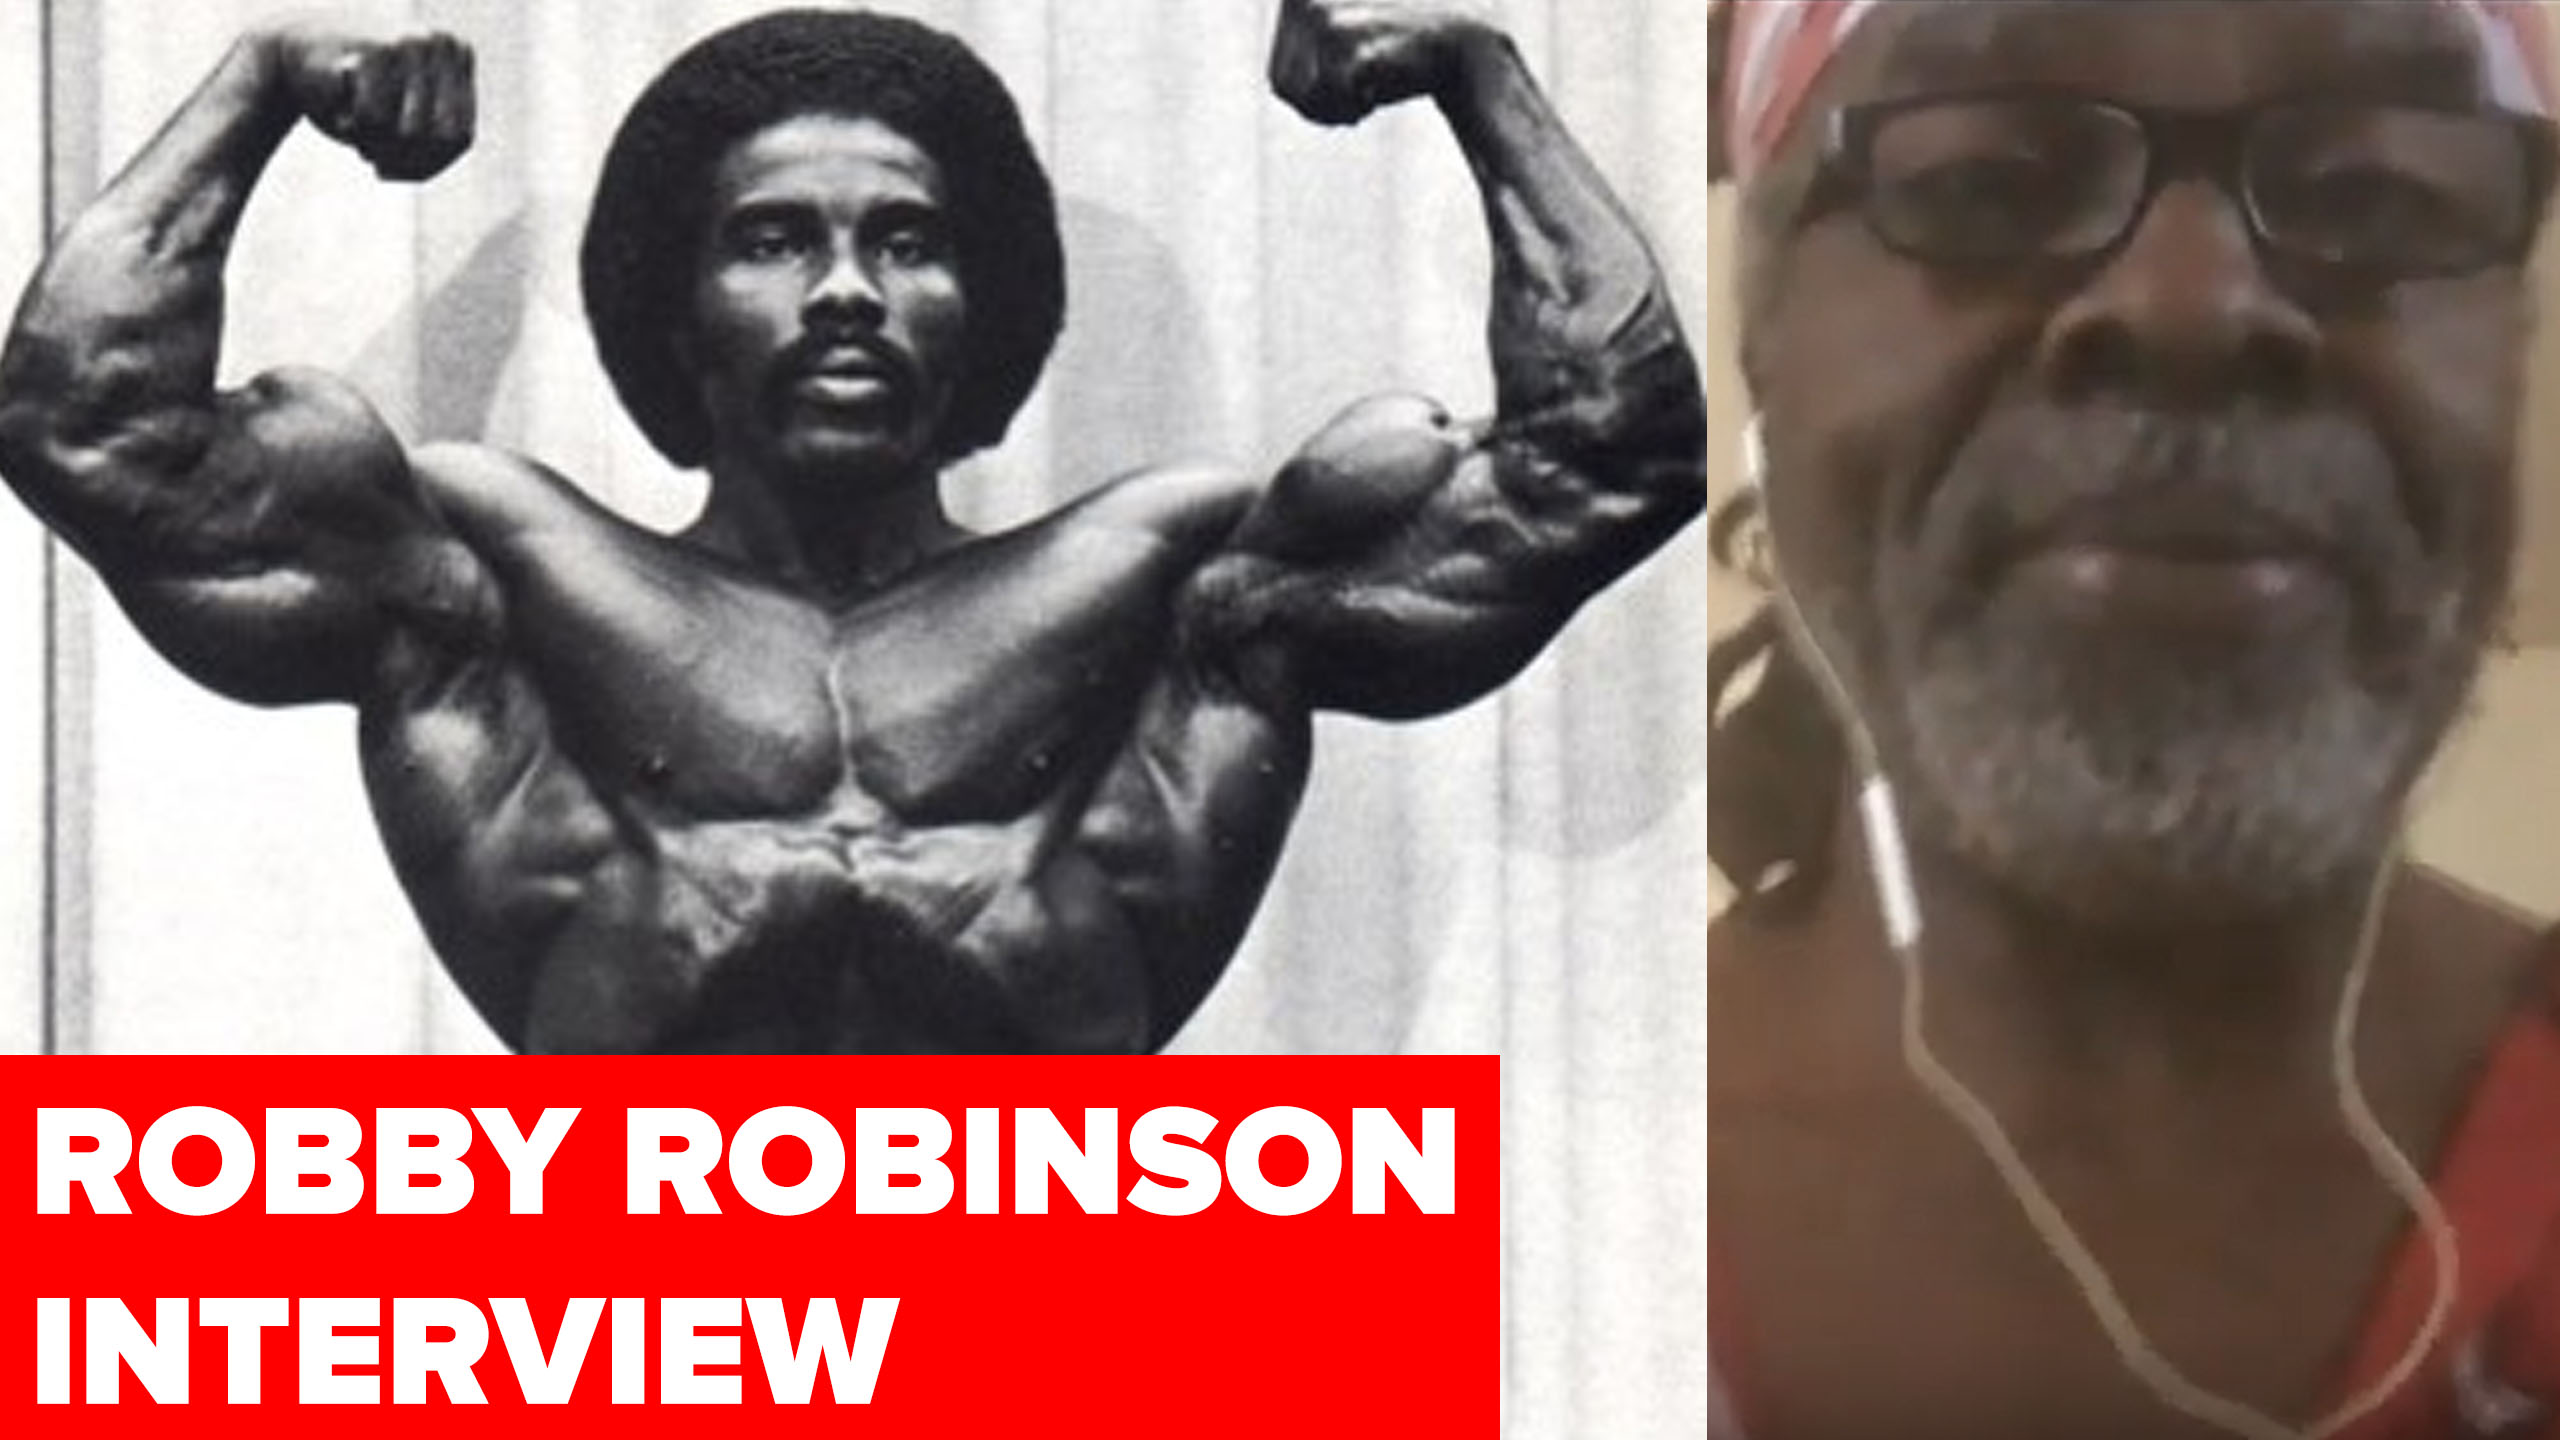 robby robinson interview